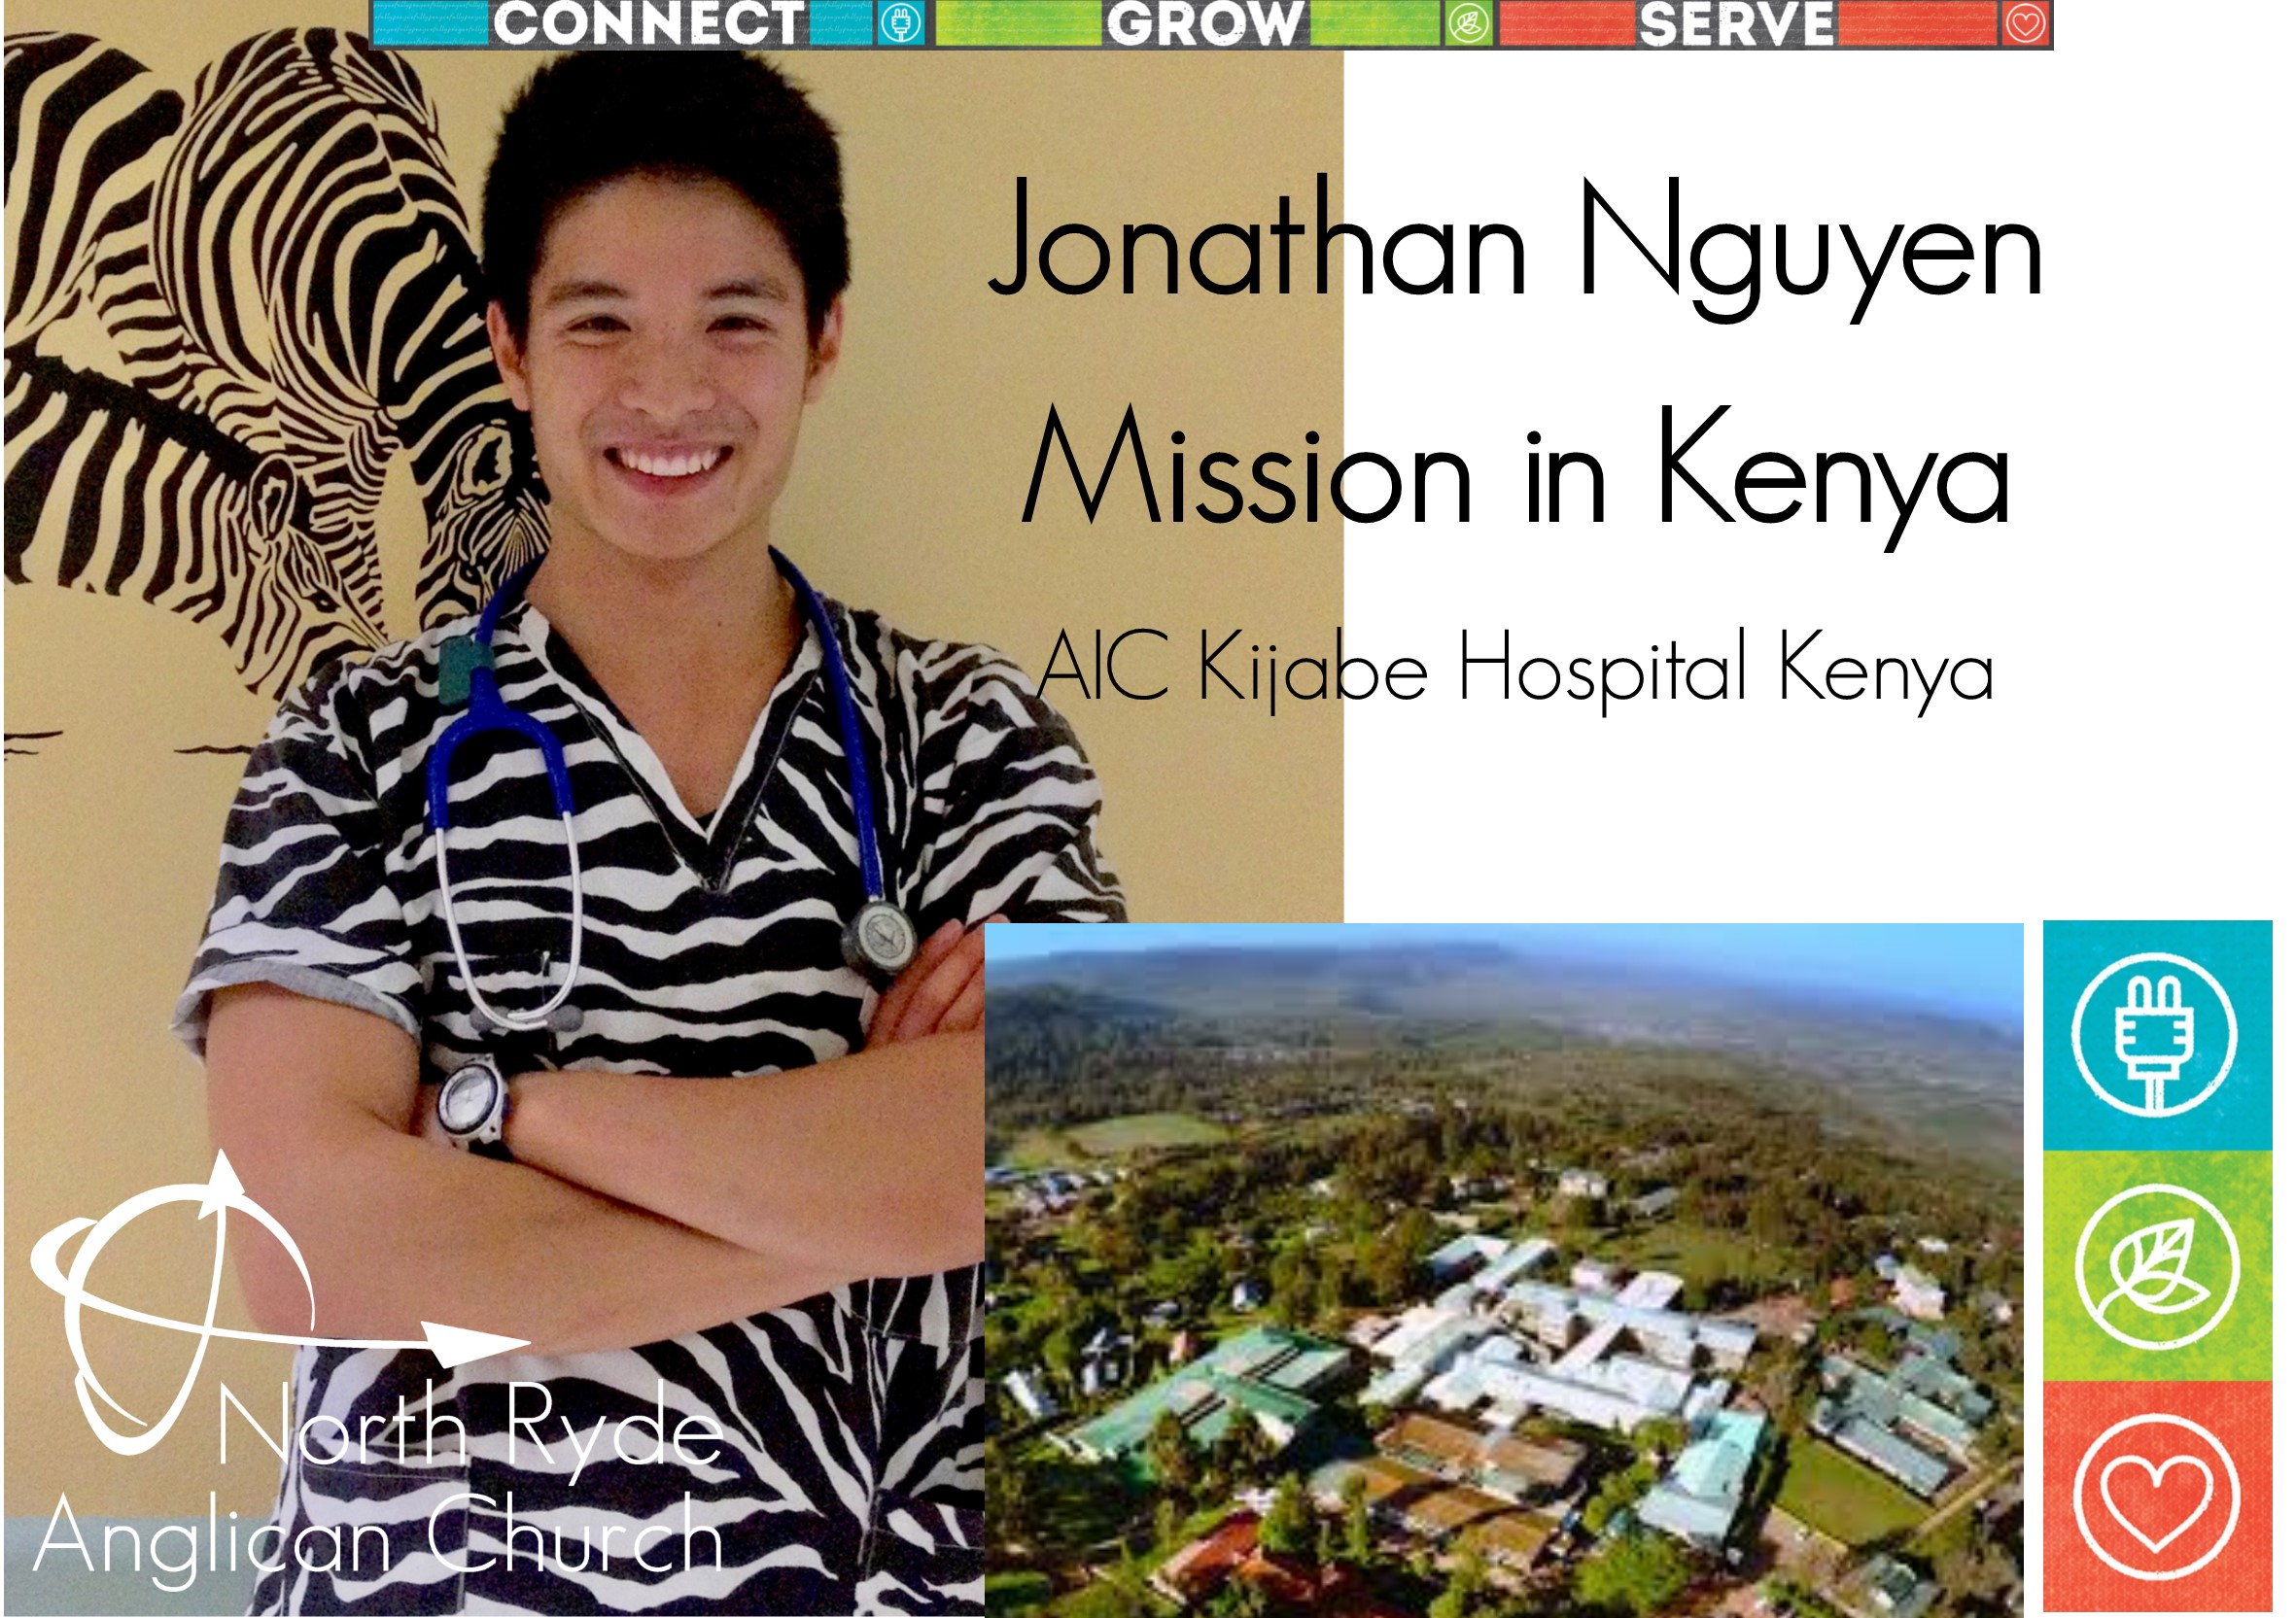 <p>Starting in May 2019, I'll spend 6 months caring for children and their families at AIC Kijabe Hospital Kenya , and will be working in a variety of settings including the wards, nursery and intensive care. This will be a busy and challenging time, and a major need at Kijabe […]</p>